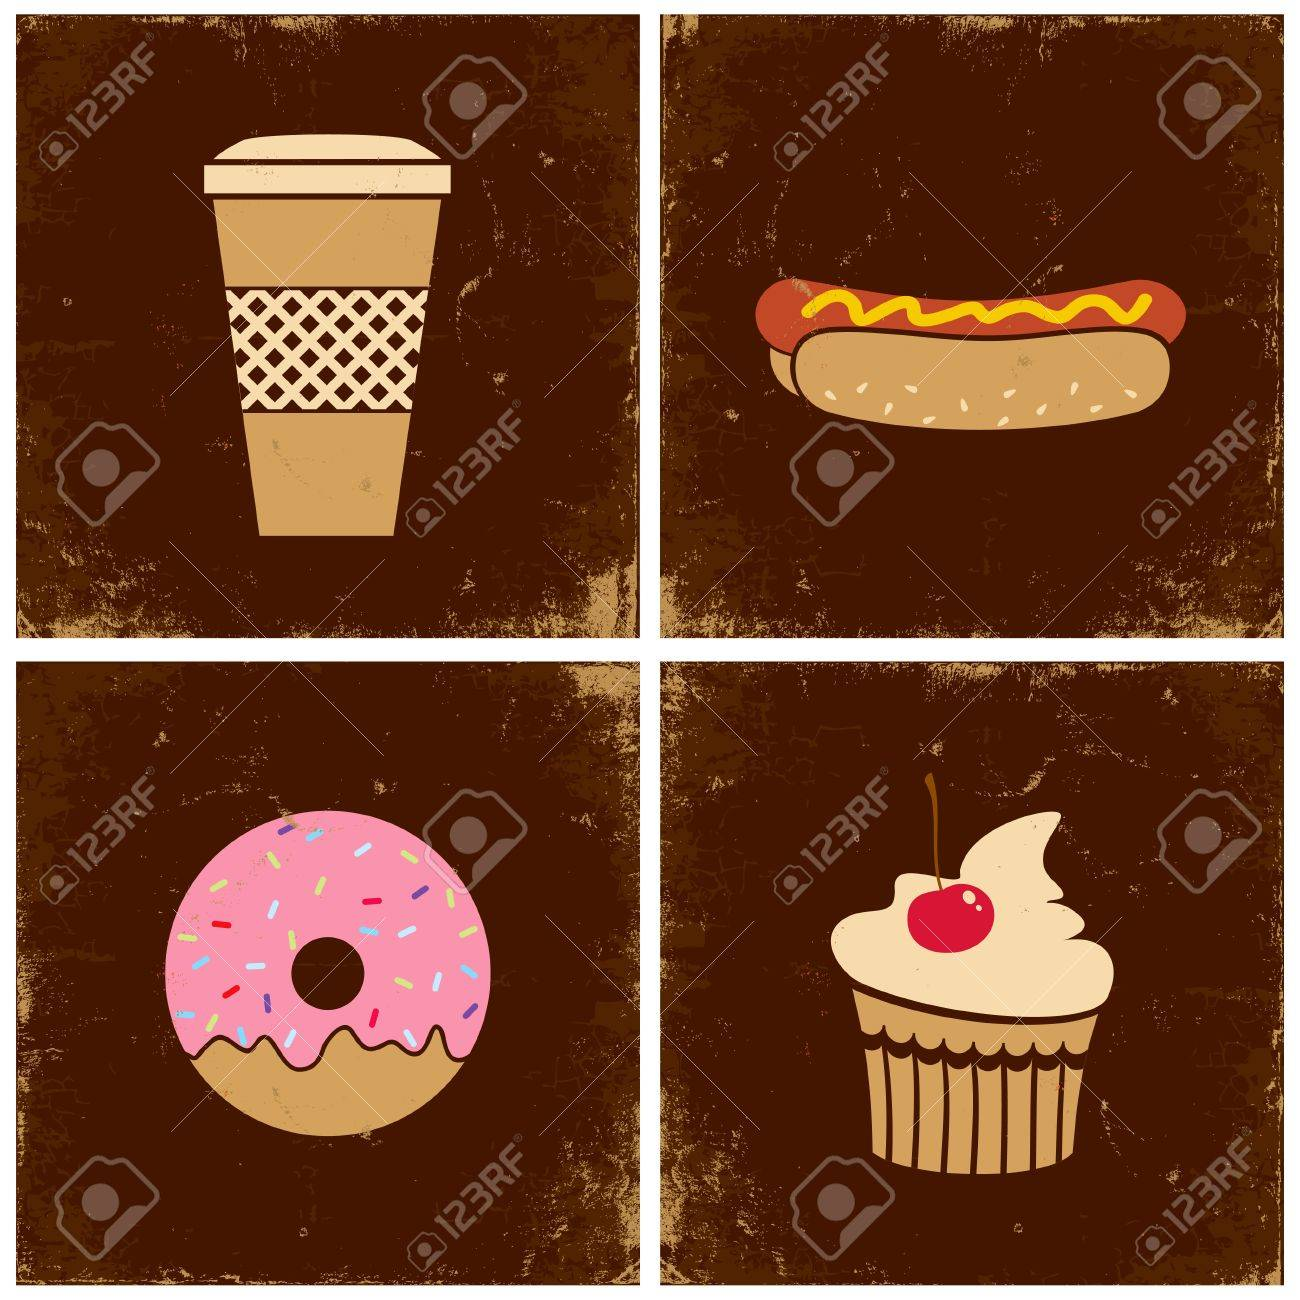 Illustrations of the cup with coffee, hot dogs, donuts and cakes Stock Vector - 10921960